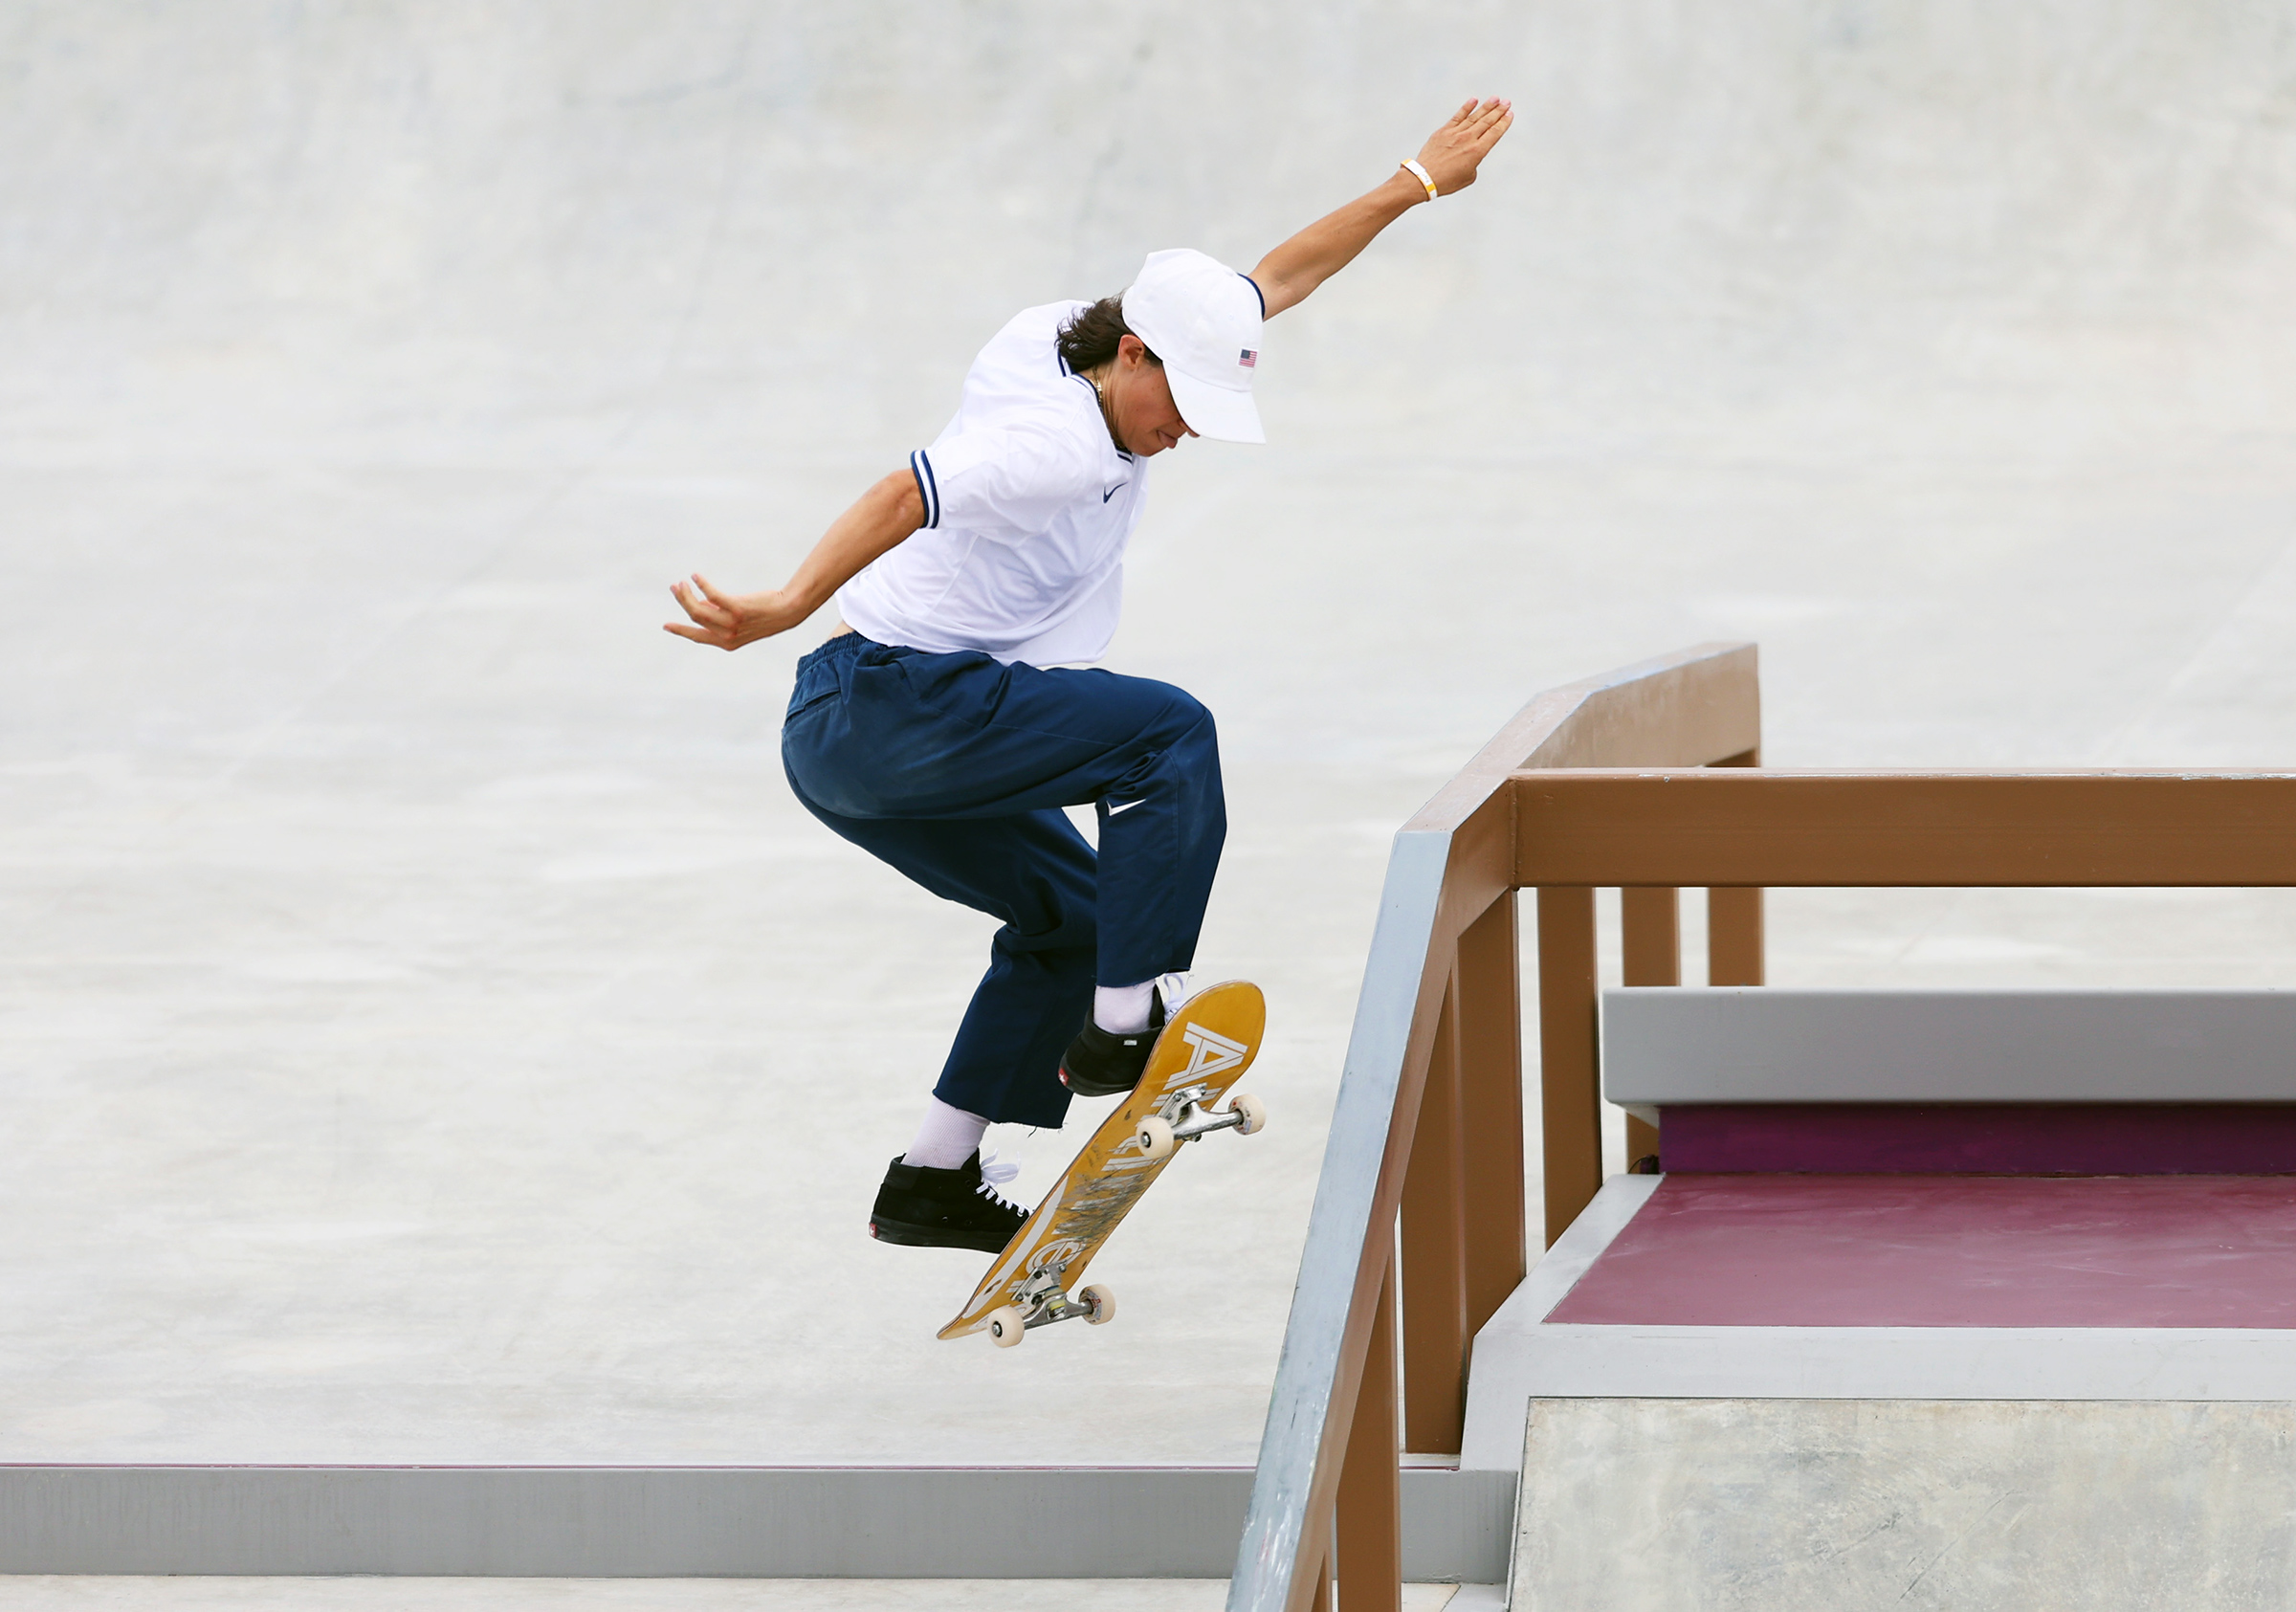 Alexis Sablone of Team United States competes during the Women's Street Prelims Heat 4 on day three of the Tokyo 2020 Olympic Games at Ariake Urban Sports Park on July 26, 2021 in Tokyo, Japan.